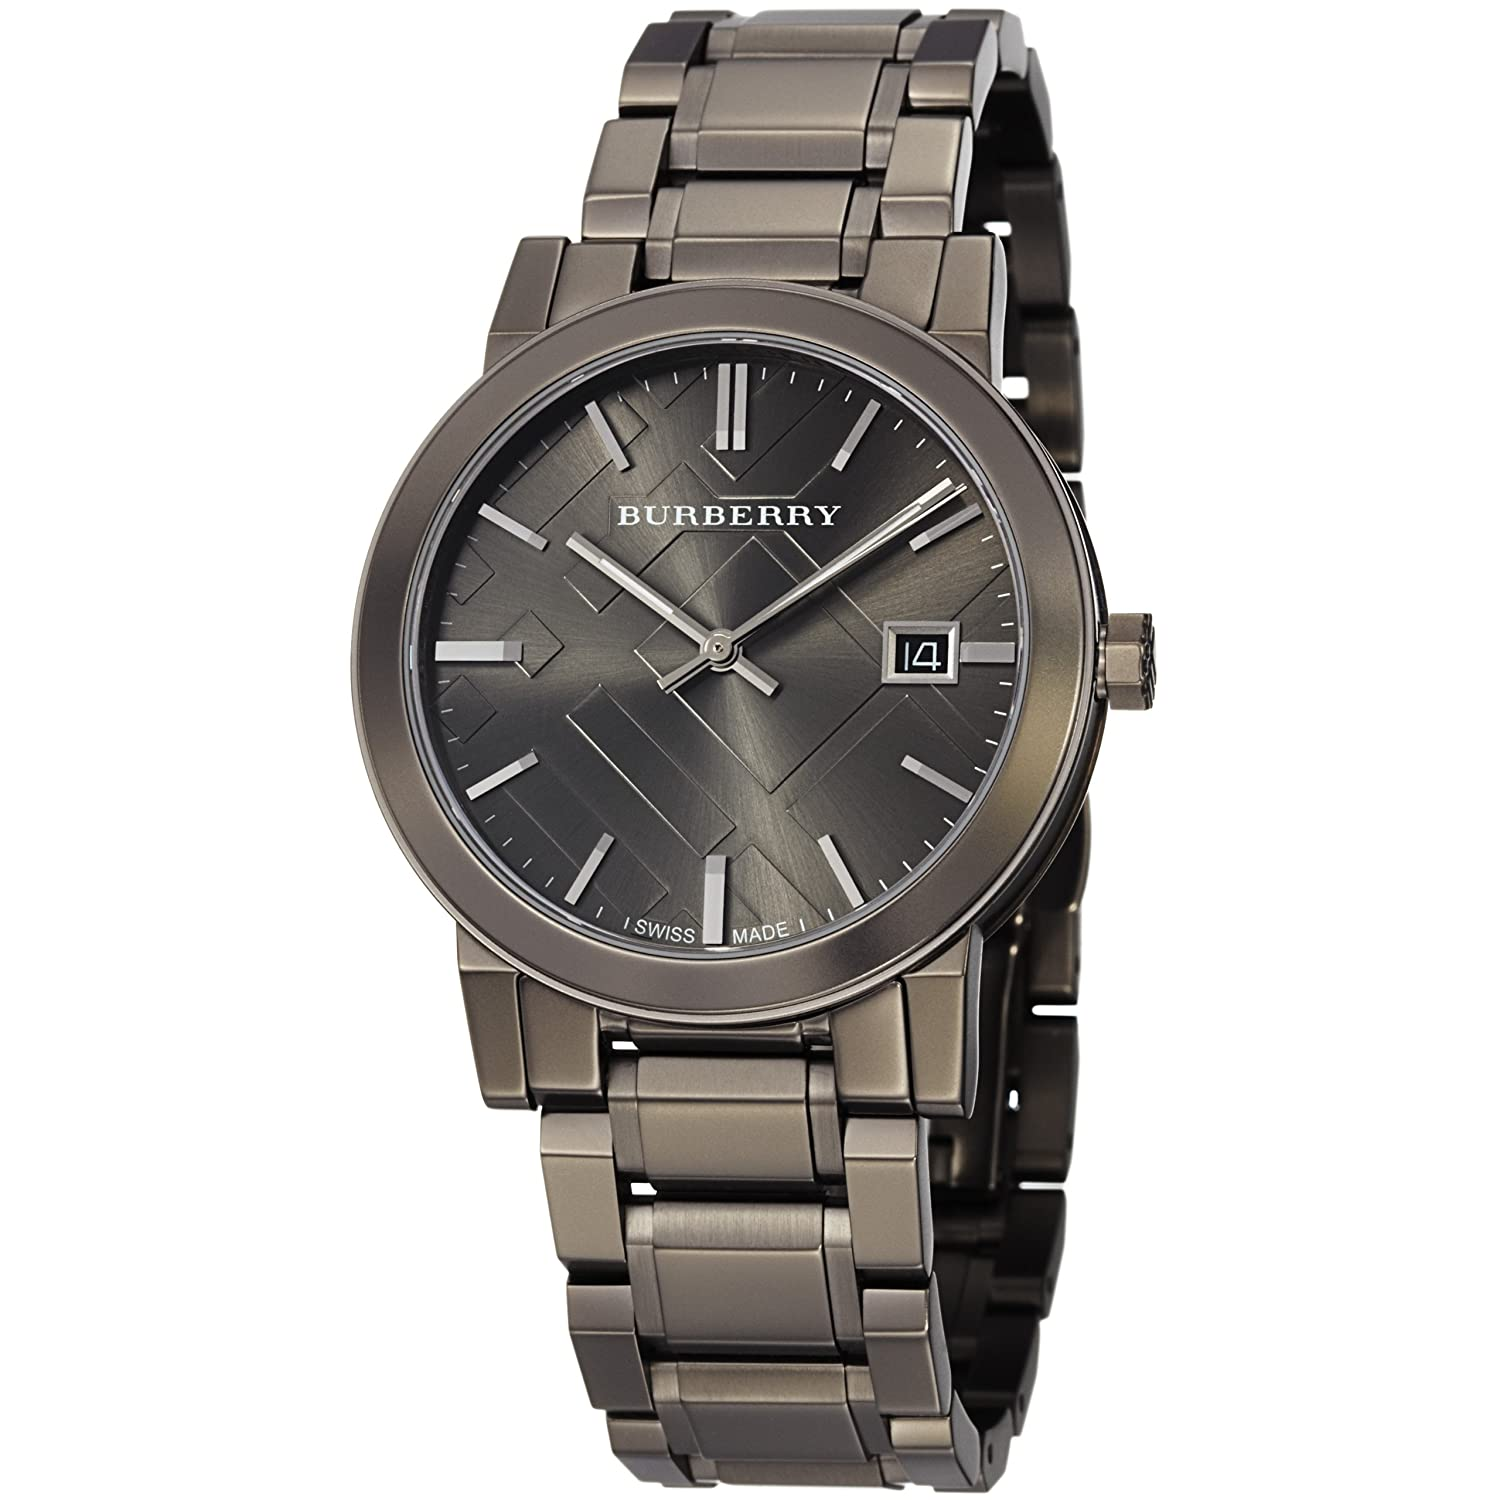 Burberry watch mens sale for Burberry watches